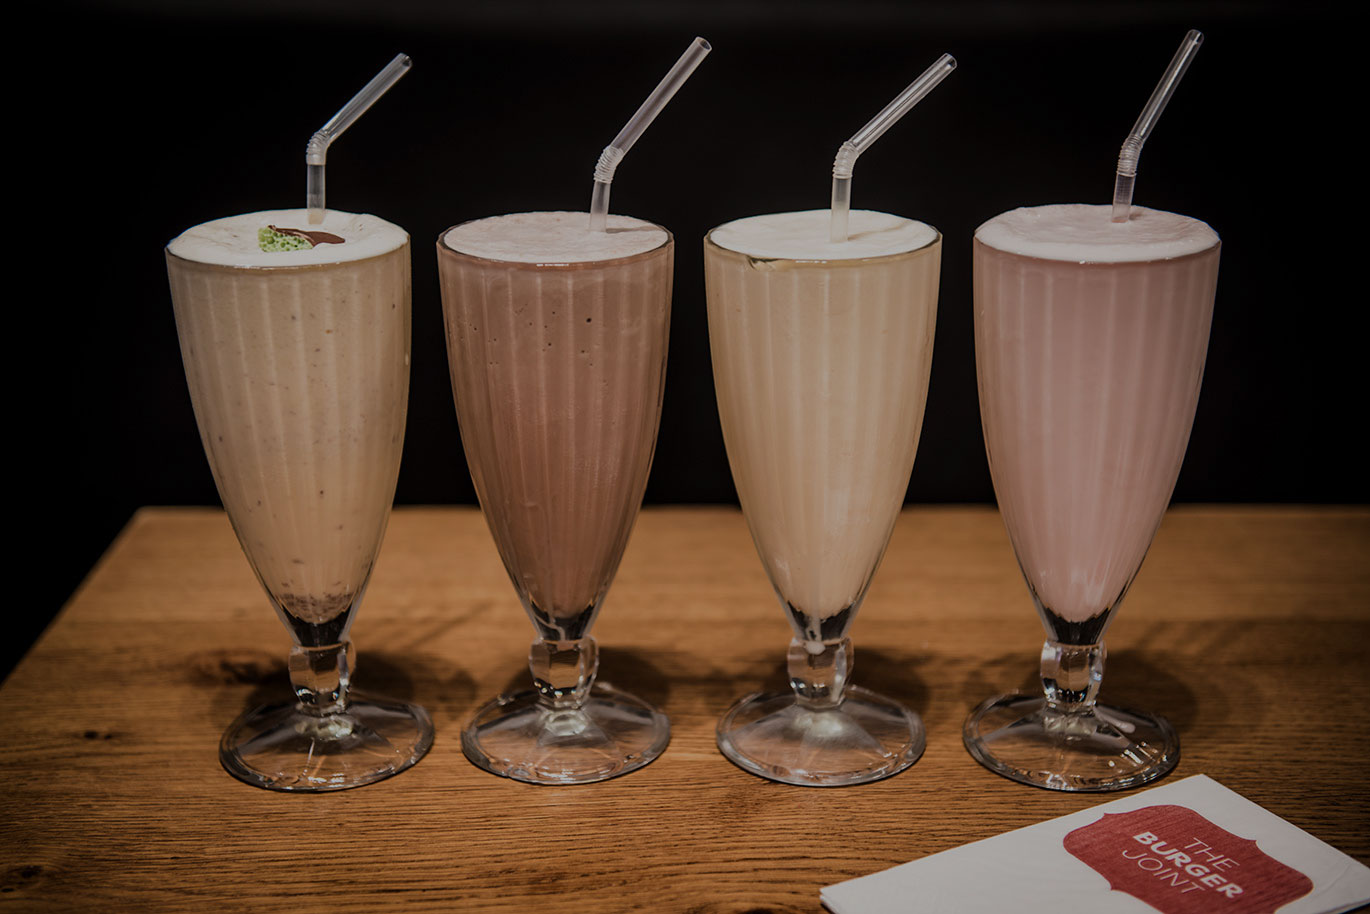 Awesome Milkshakes at The Burger Joint, Bristol